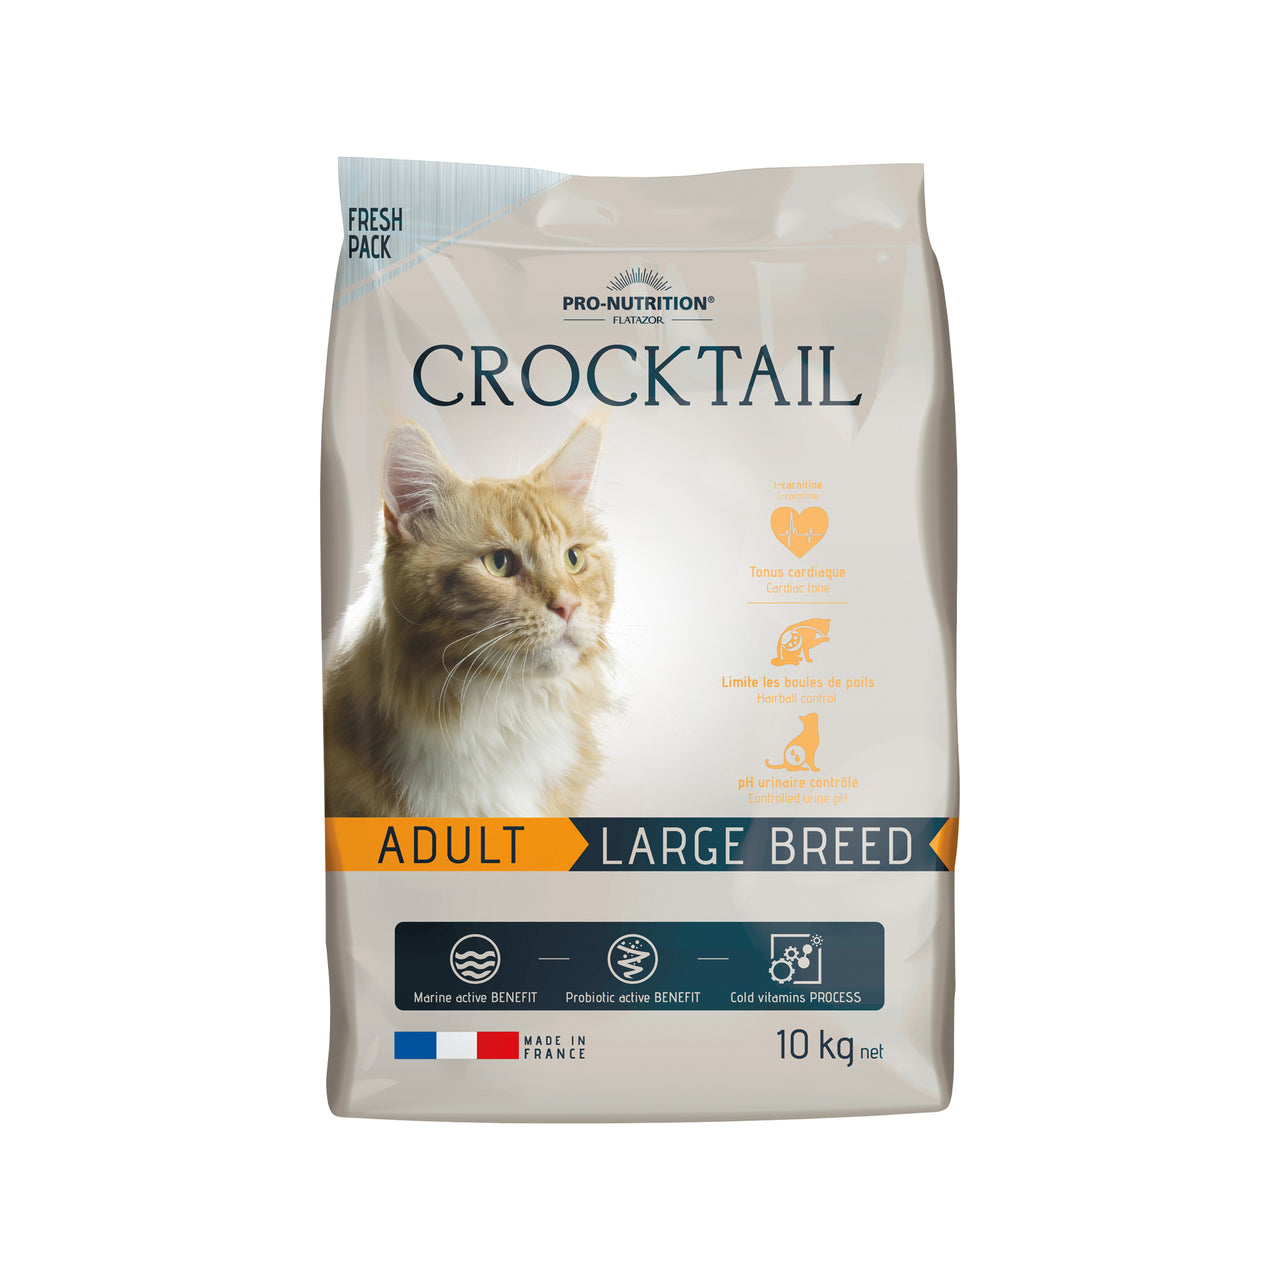 Crocktail Adult Large Breed 10kg